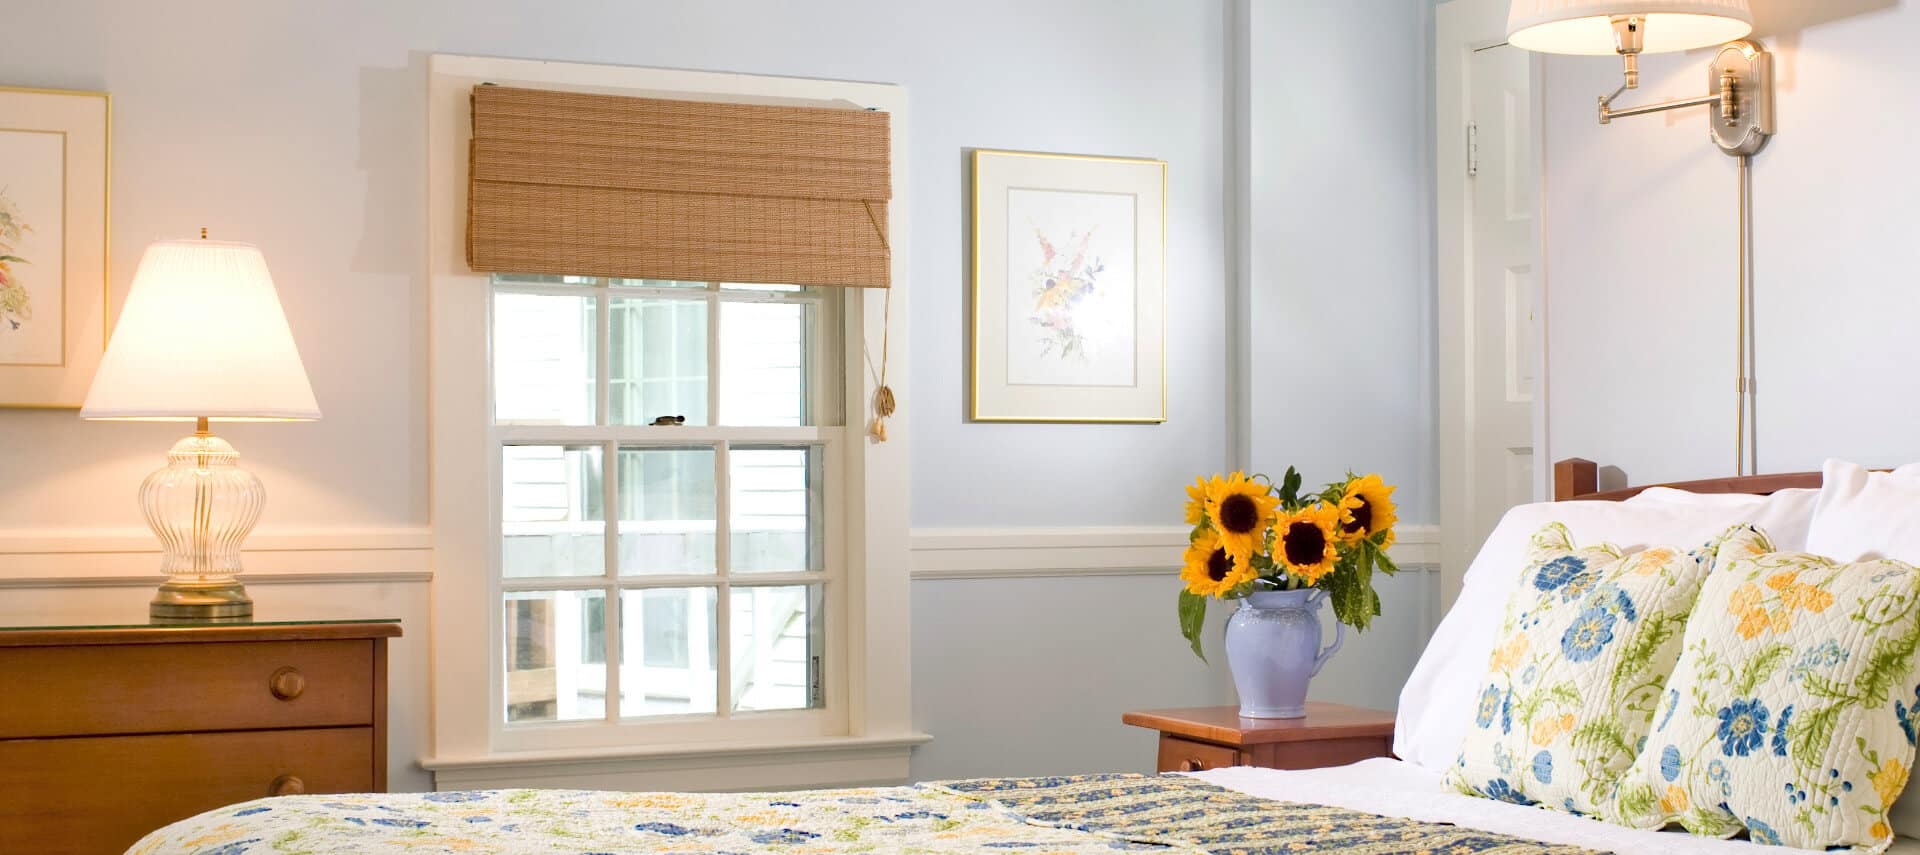 Bright cheerful bedroom with wooden bed made up in white yellow and blue quilt and shams with a large window and wooden dresser.